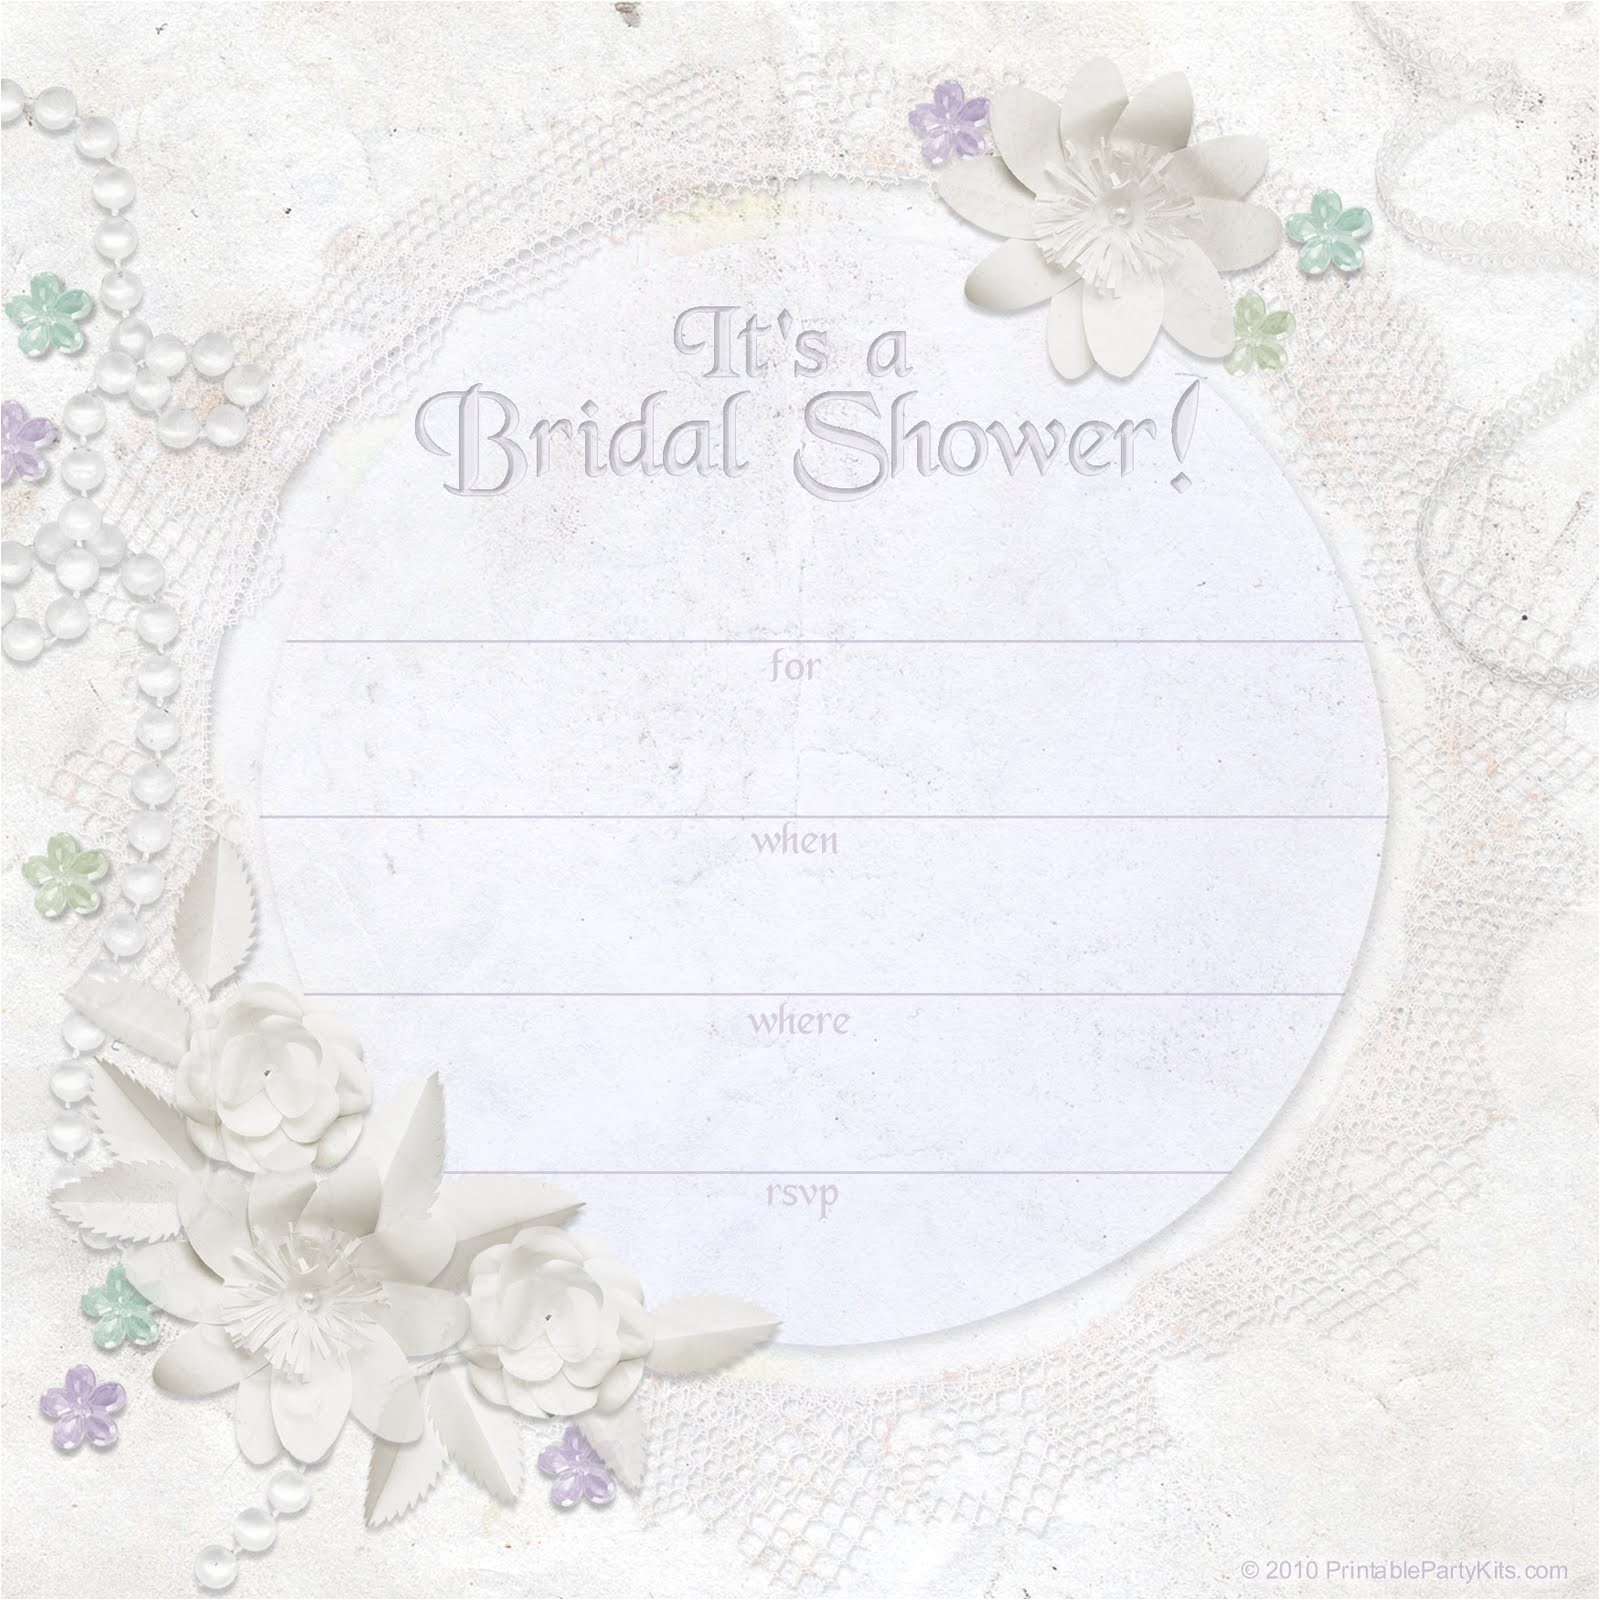 Free Bridal Shower Invitation Templates Free Printable Bridal Shower Invitations